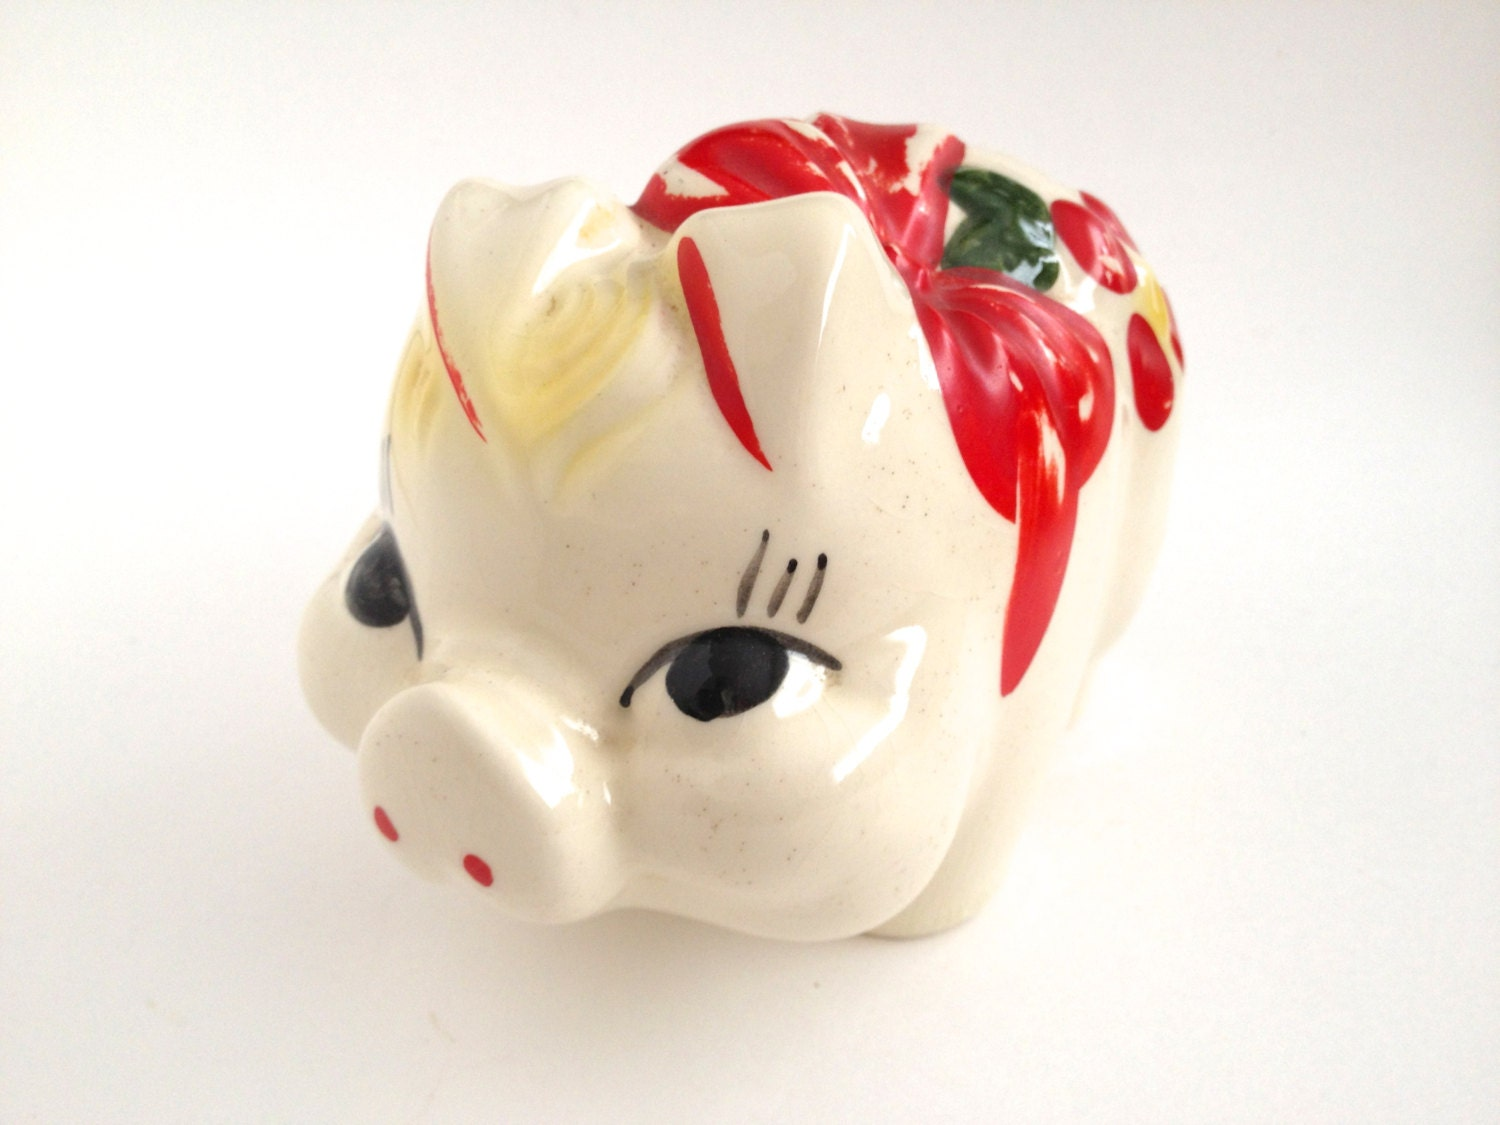 Vintage Ceramic Piggy Bank Red Bows Flowers Kitsch Coin Holder